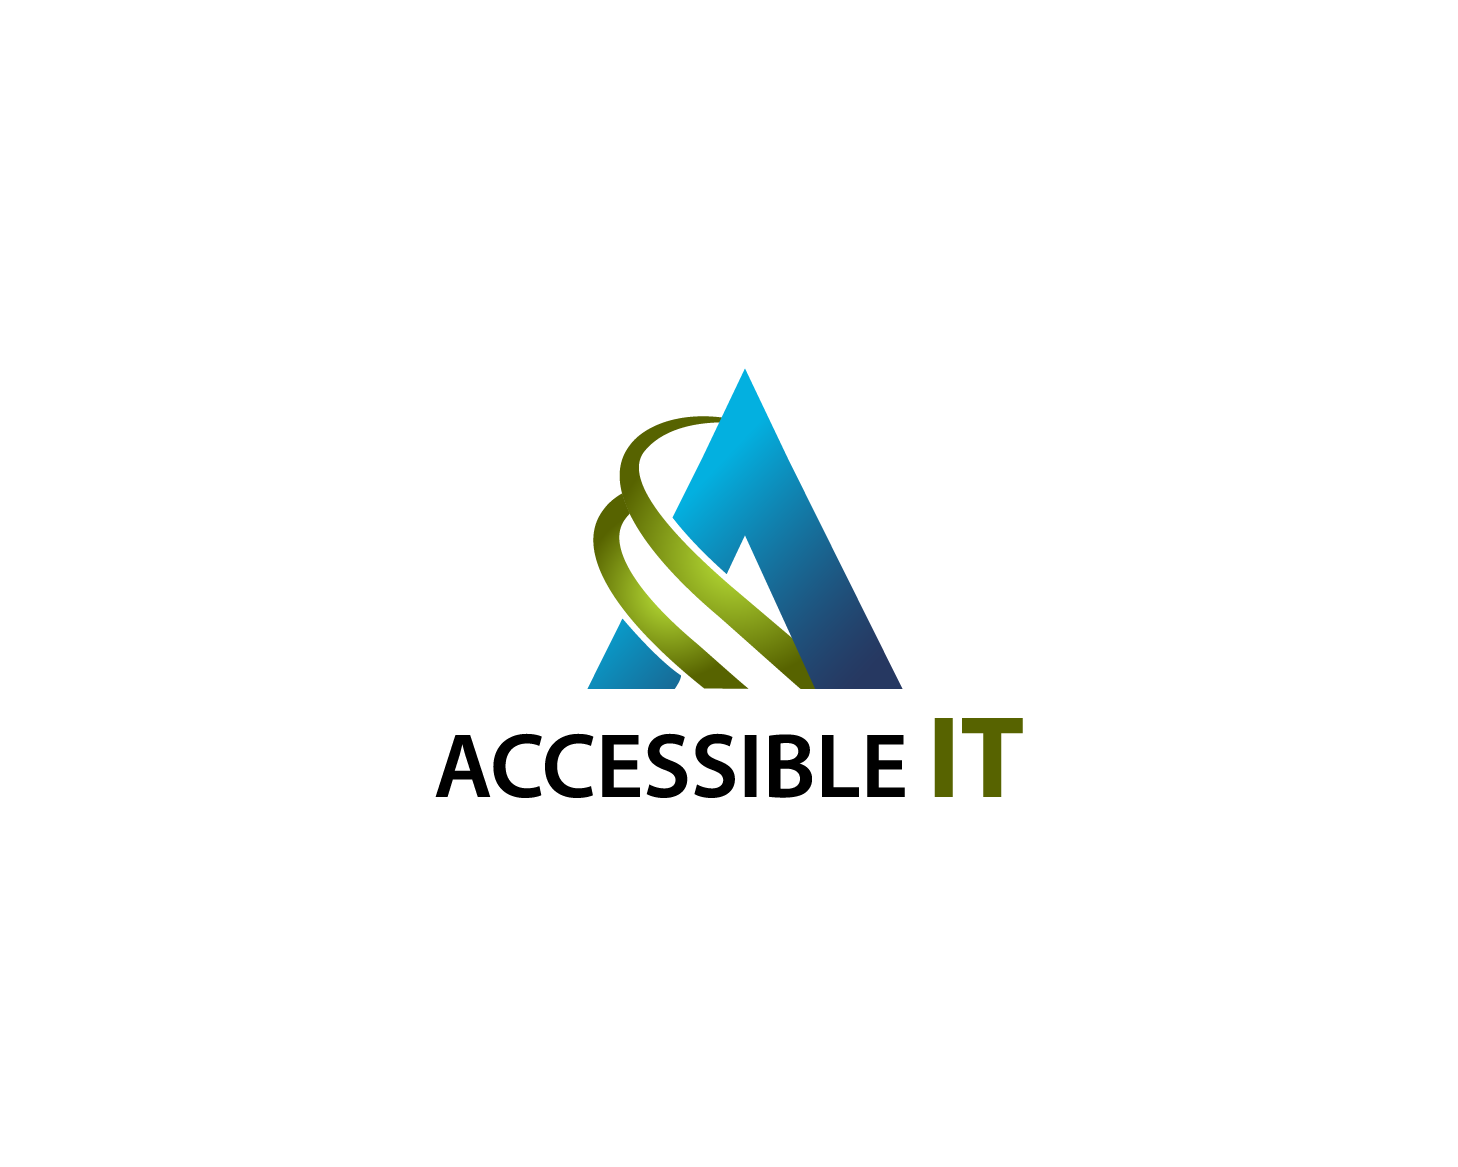 Logo Design by pralon - Entry No. 92 in the Logo Design Contest Logo Design Needed for Exciting New Company Accessible IT.